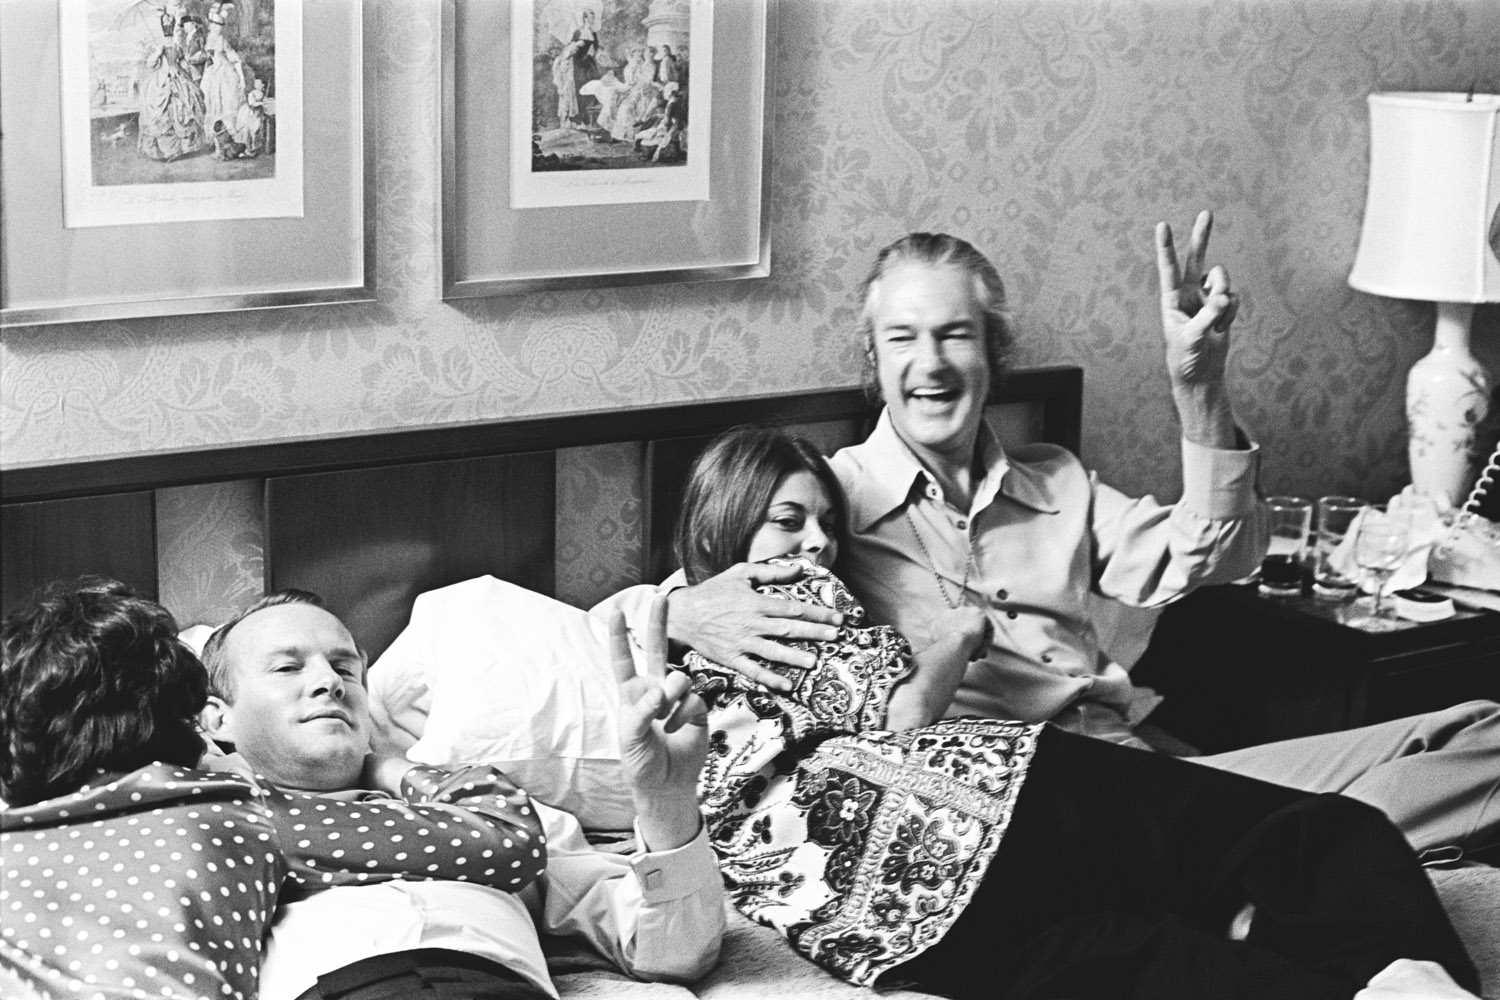 Tommy Smothers, with Rosemary and Timothy Leary, gives the peace sign.